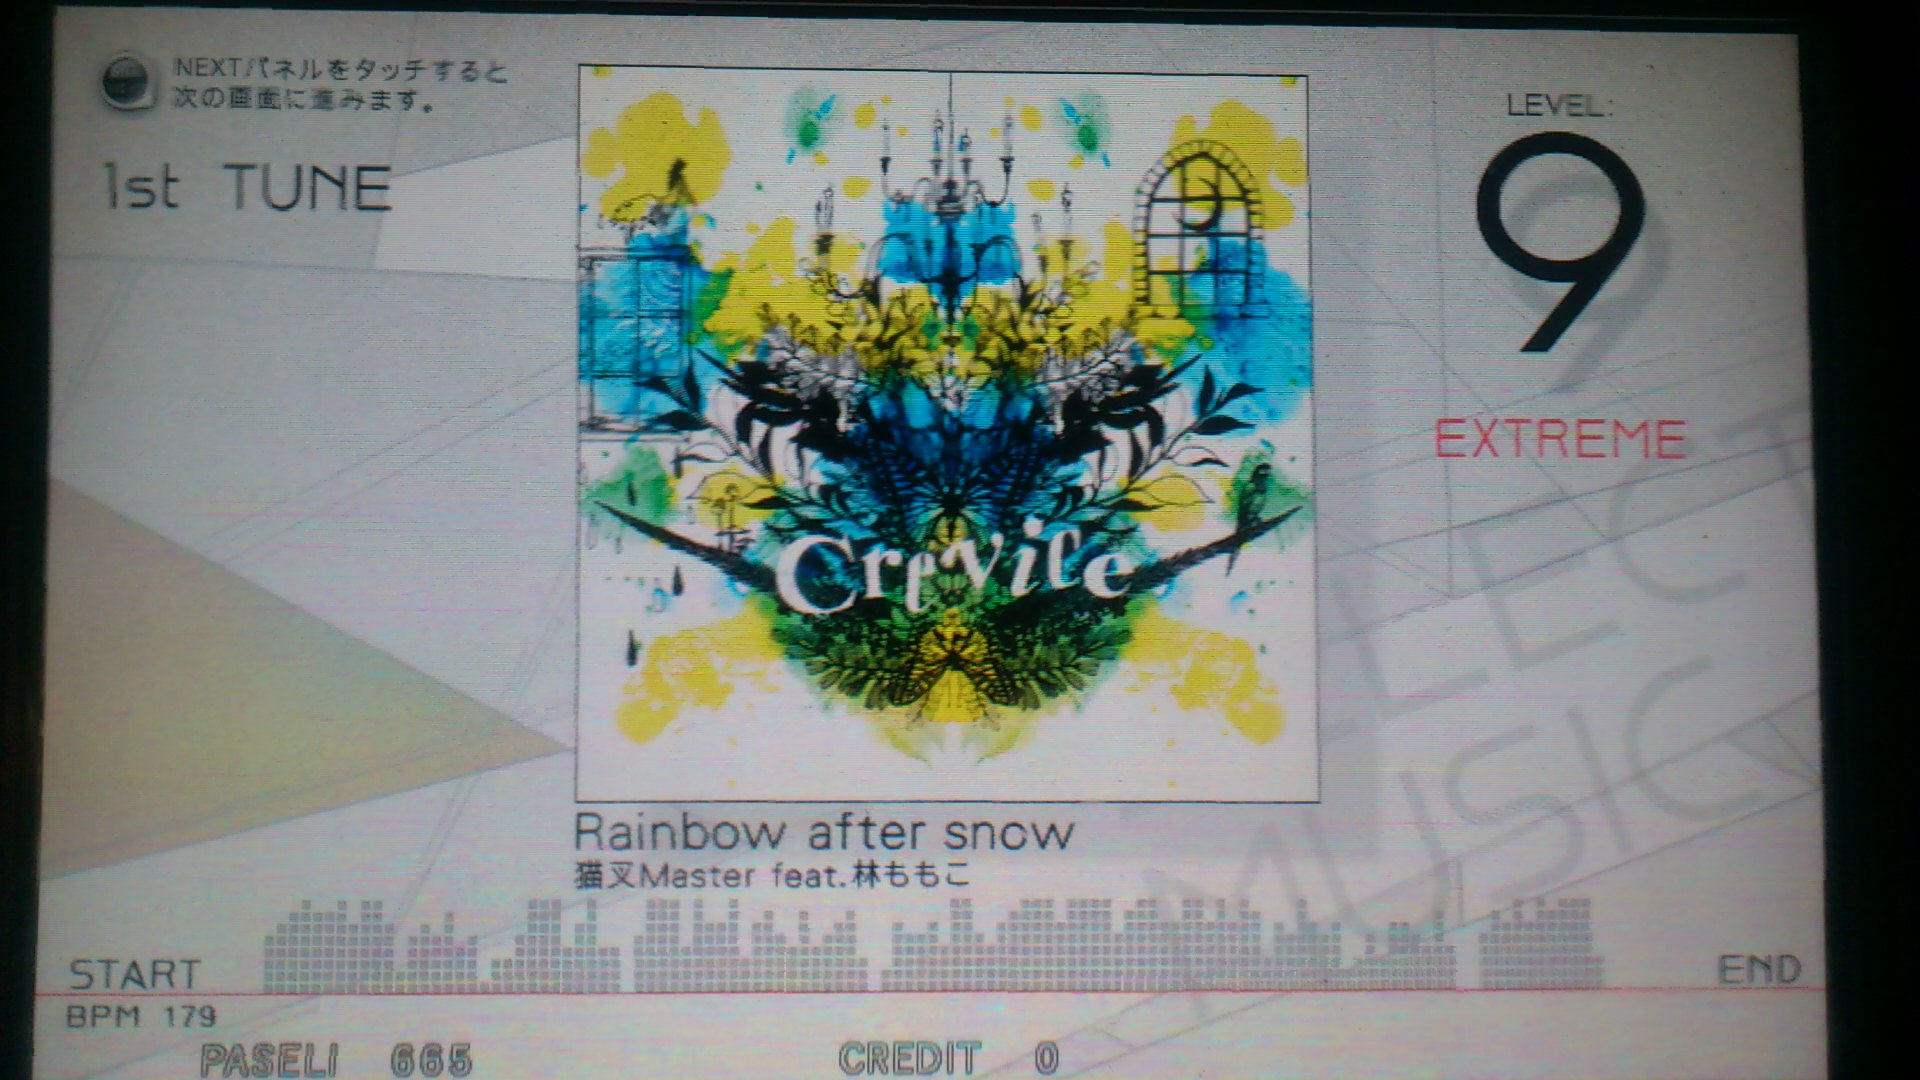 Rainbow after snow 指ジャケ